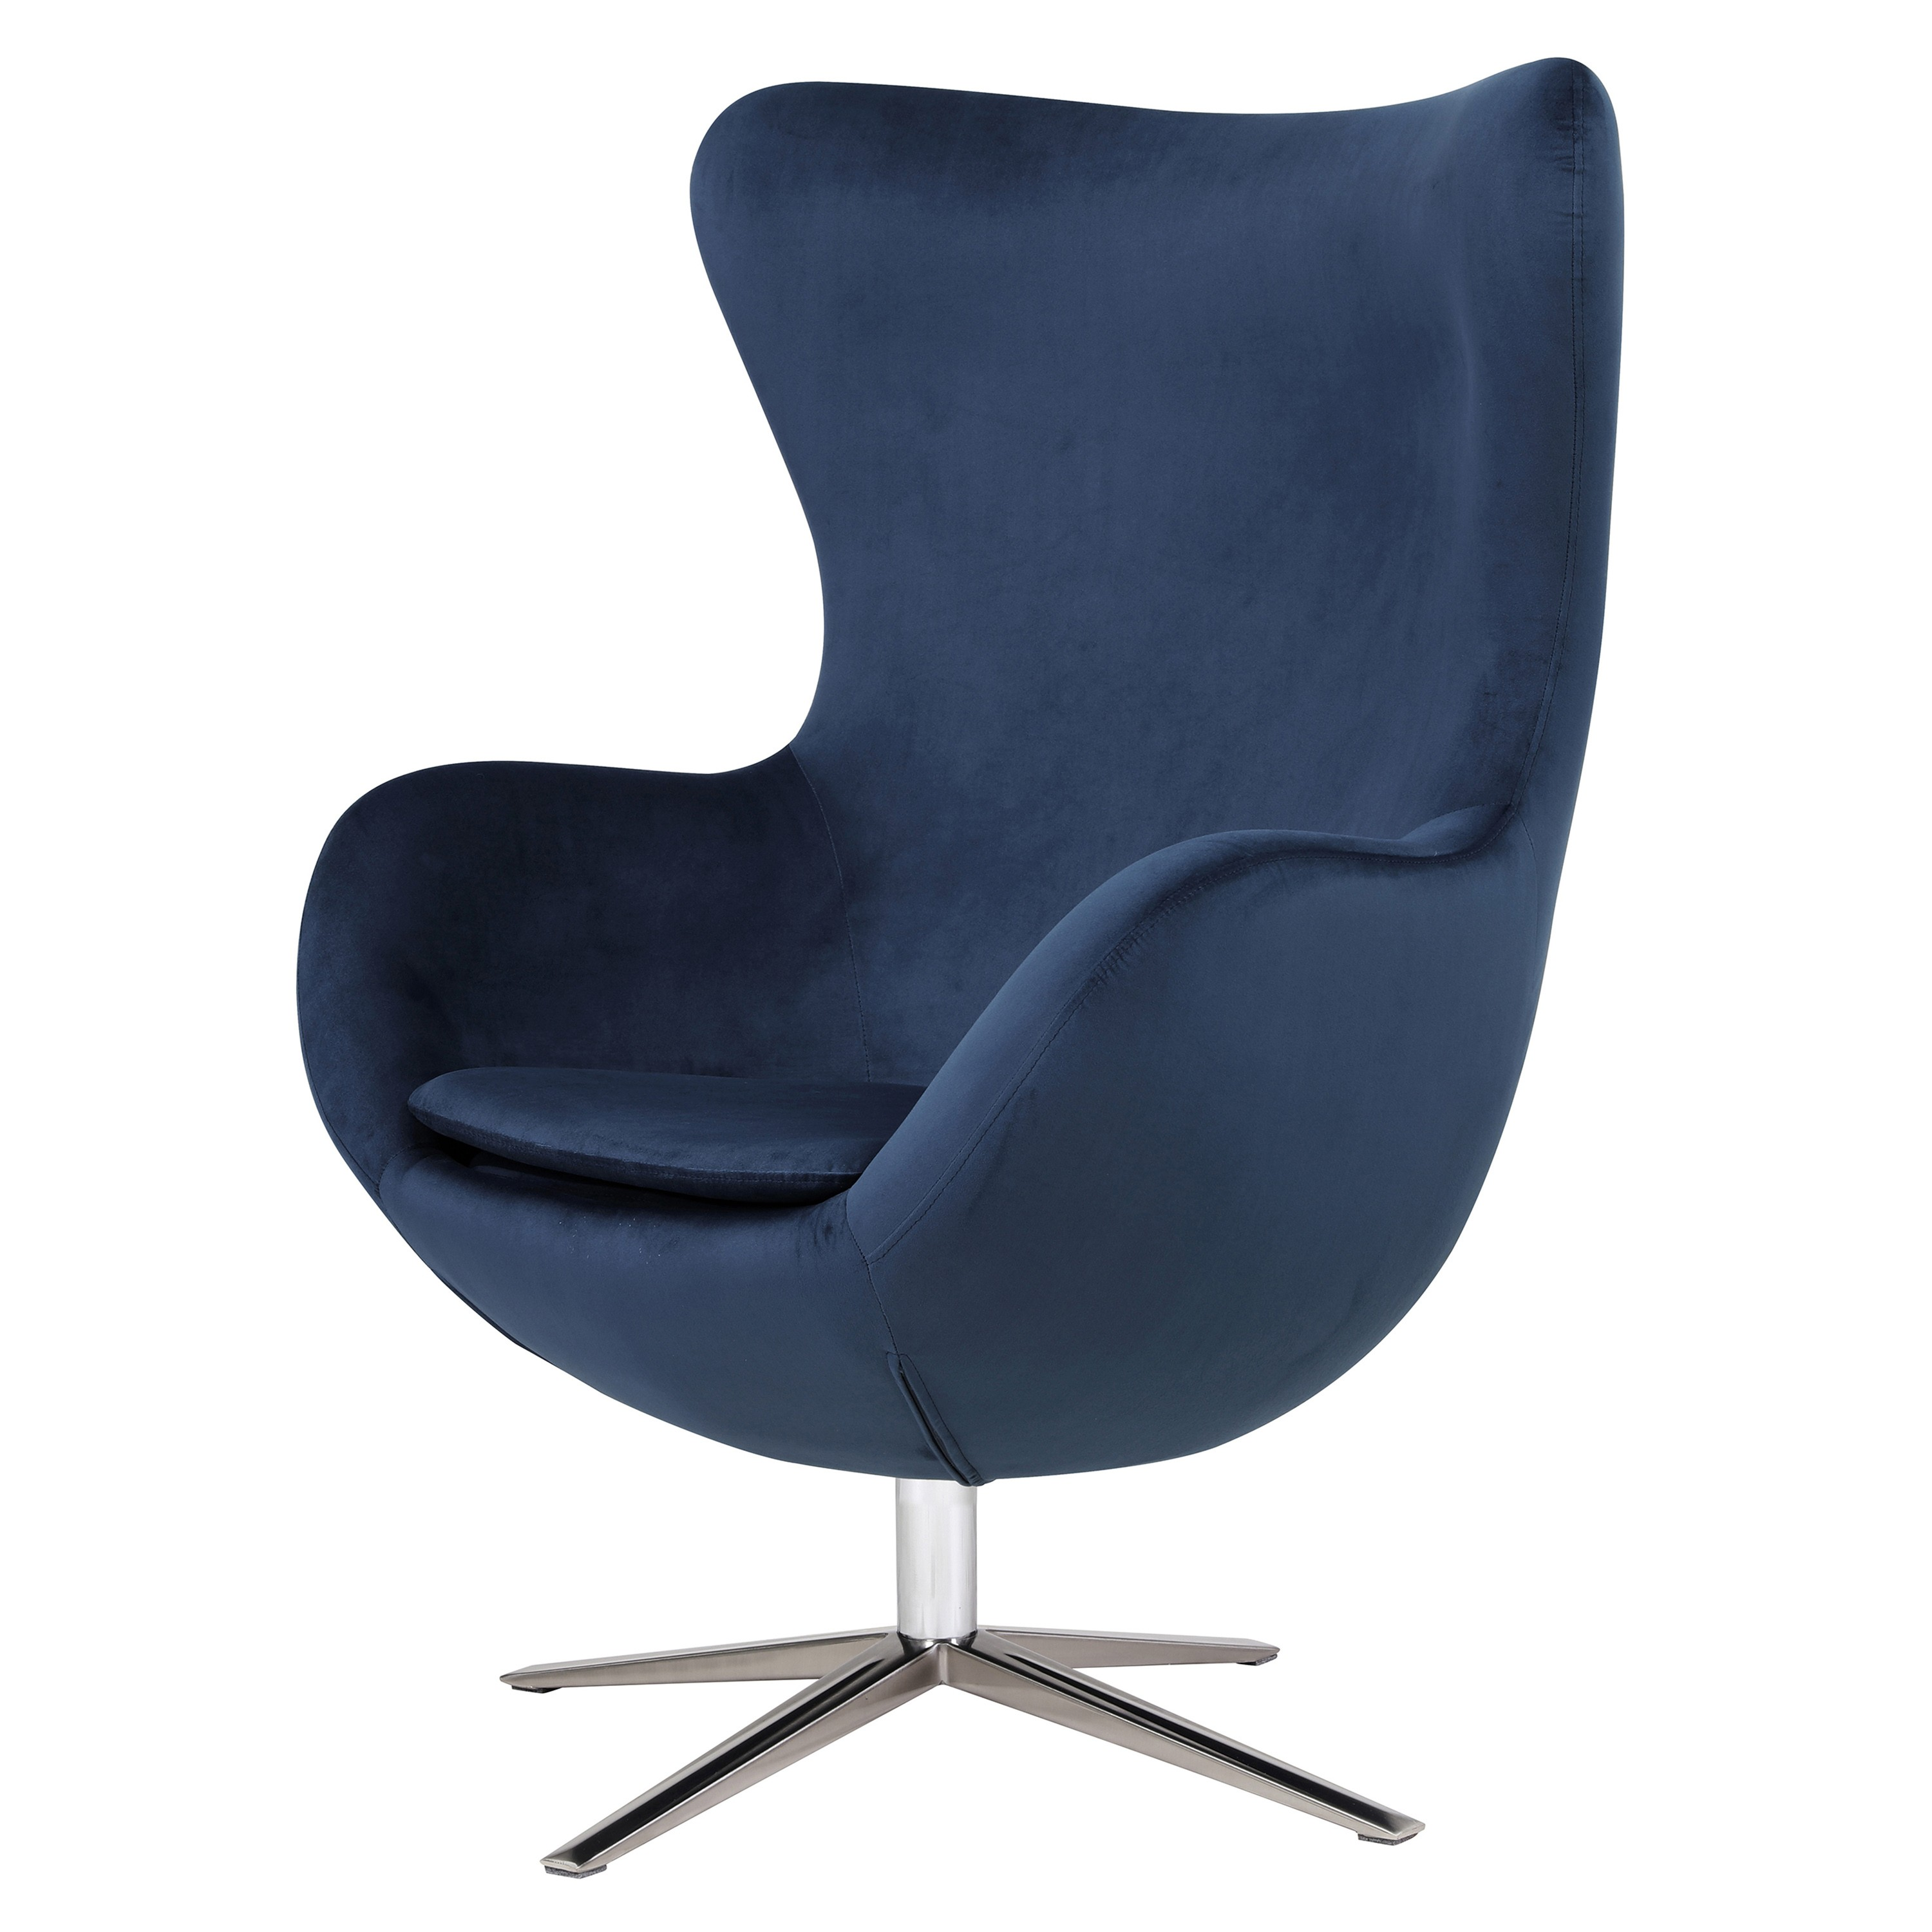 453040 Mb Ch Npd Furniture Wholesale Lifestyle